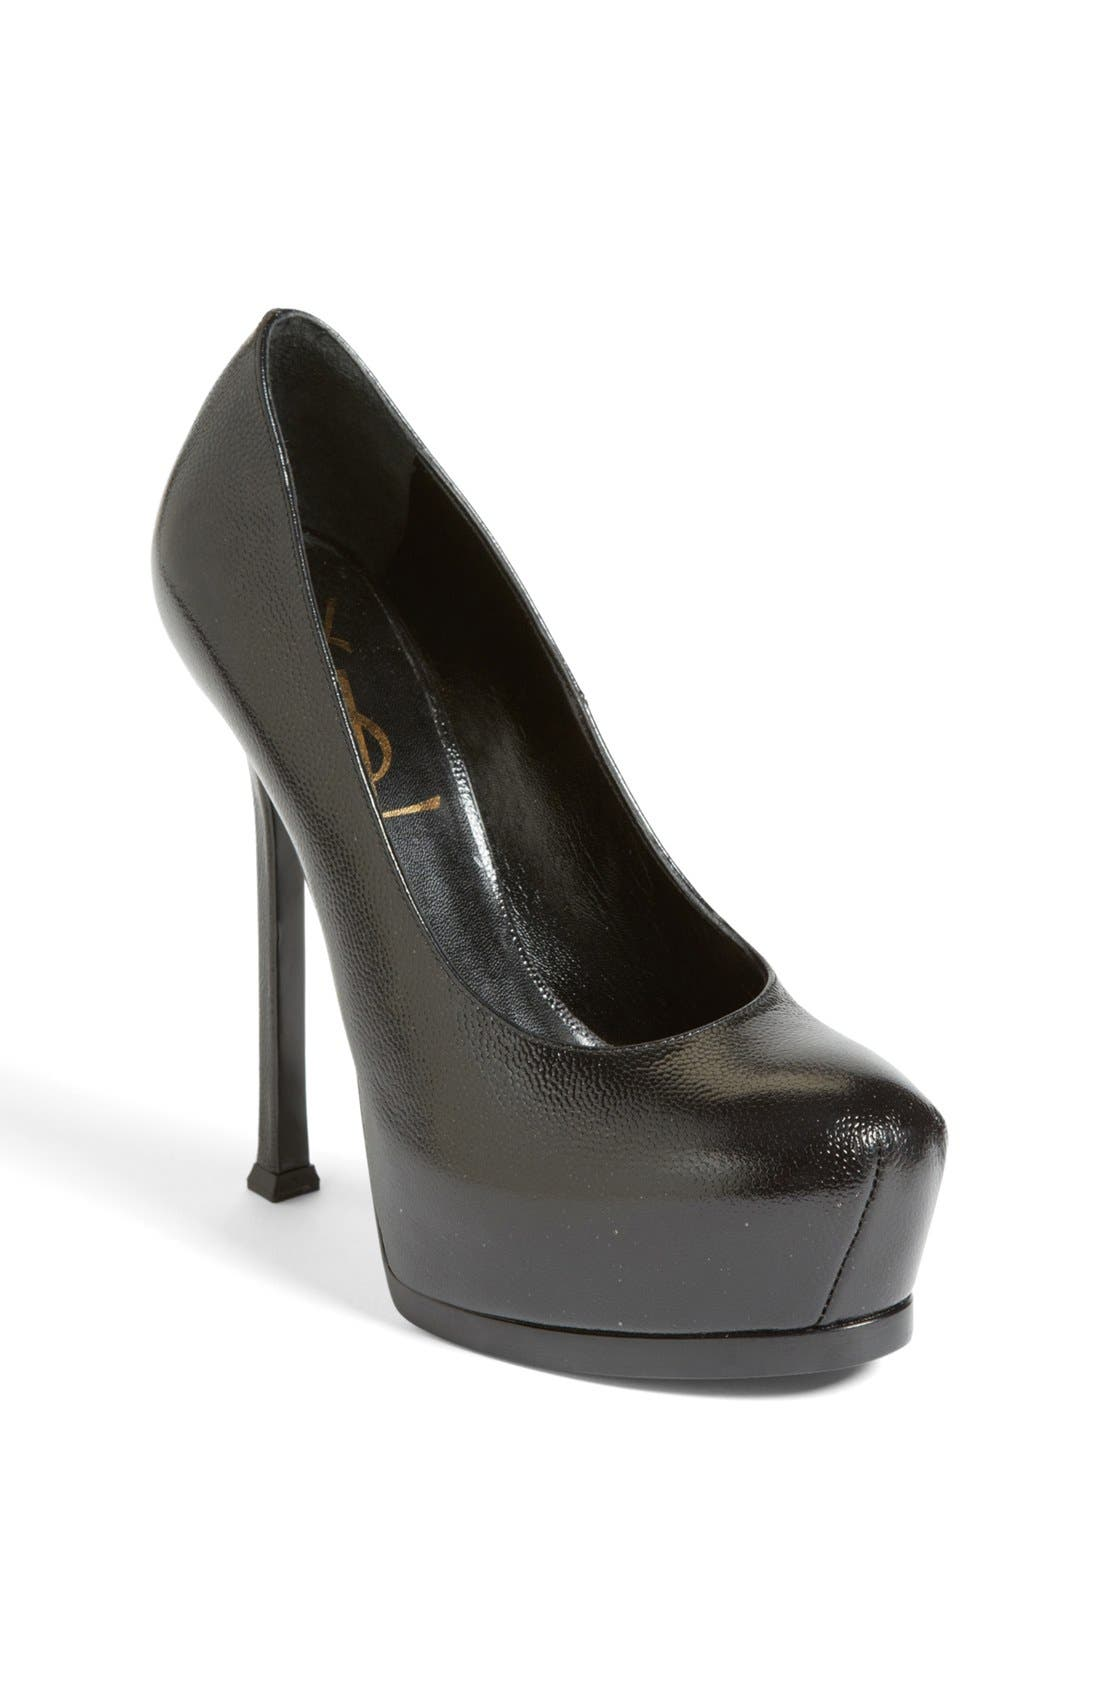 Main Image - Saint Laurent 'Tribute Two' Pump